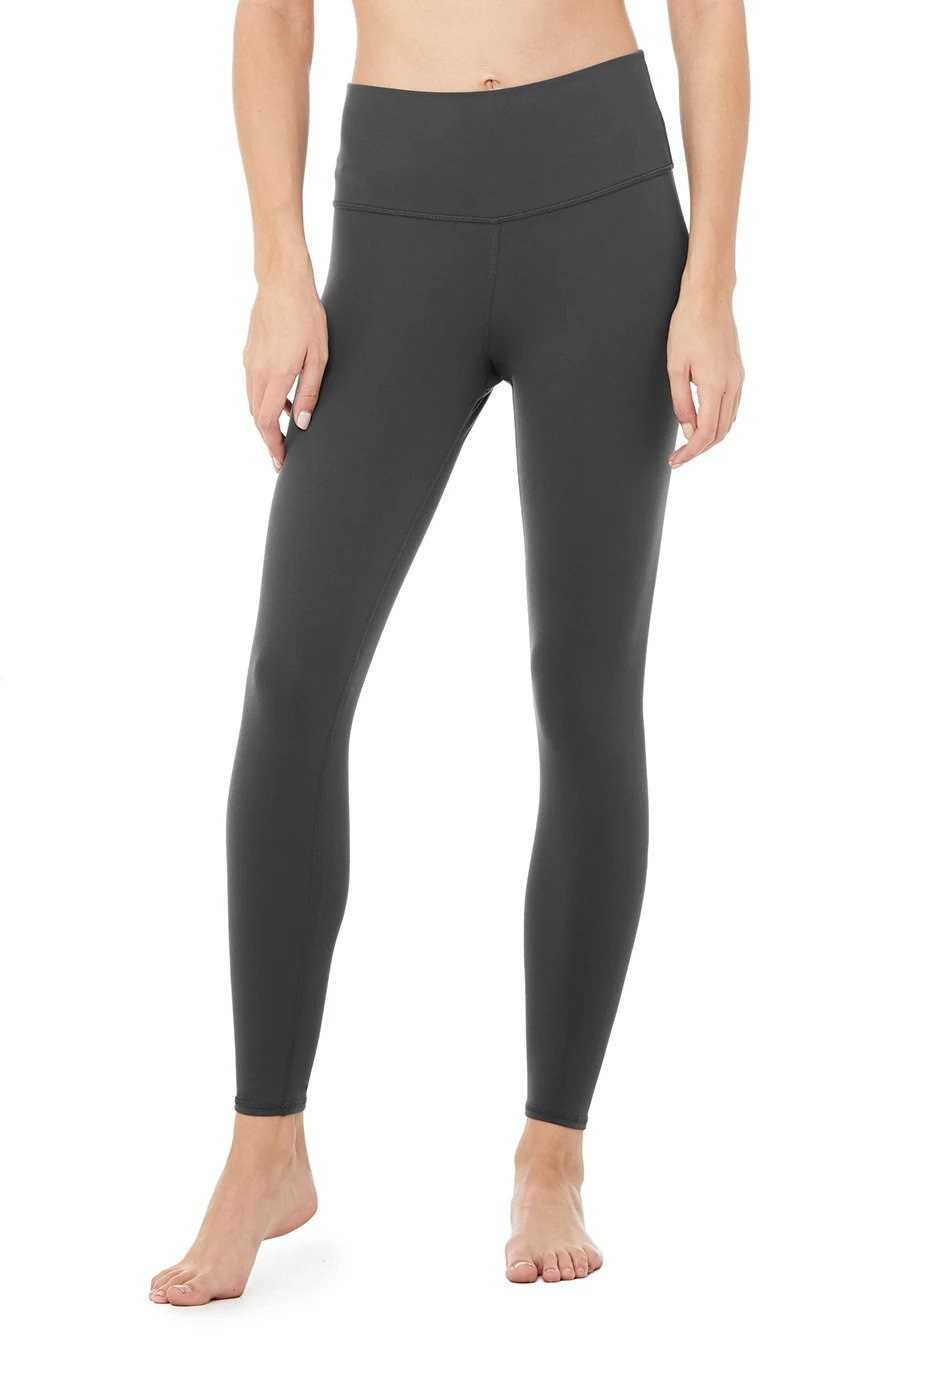 Alo Yoga XS 7/8 High-Waist Airbrush Legging - Anthracite